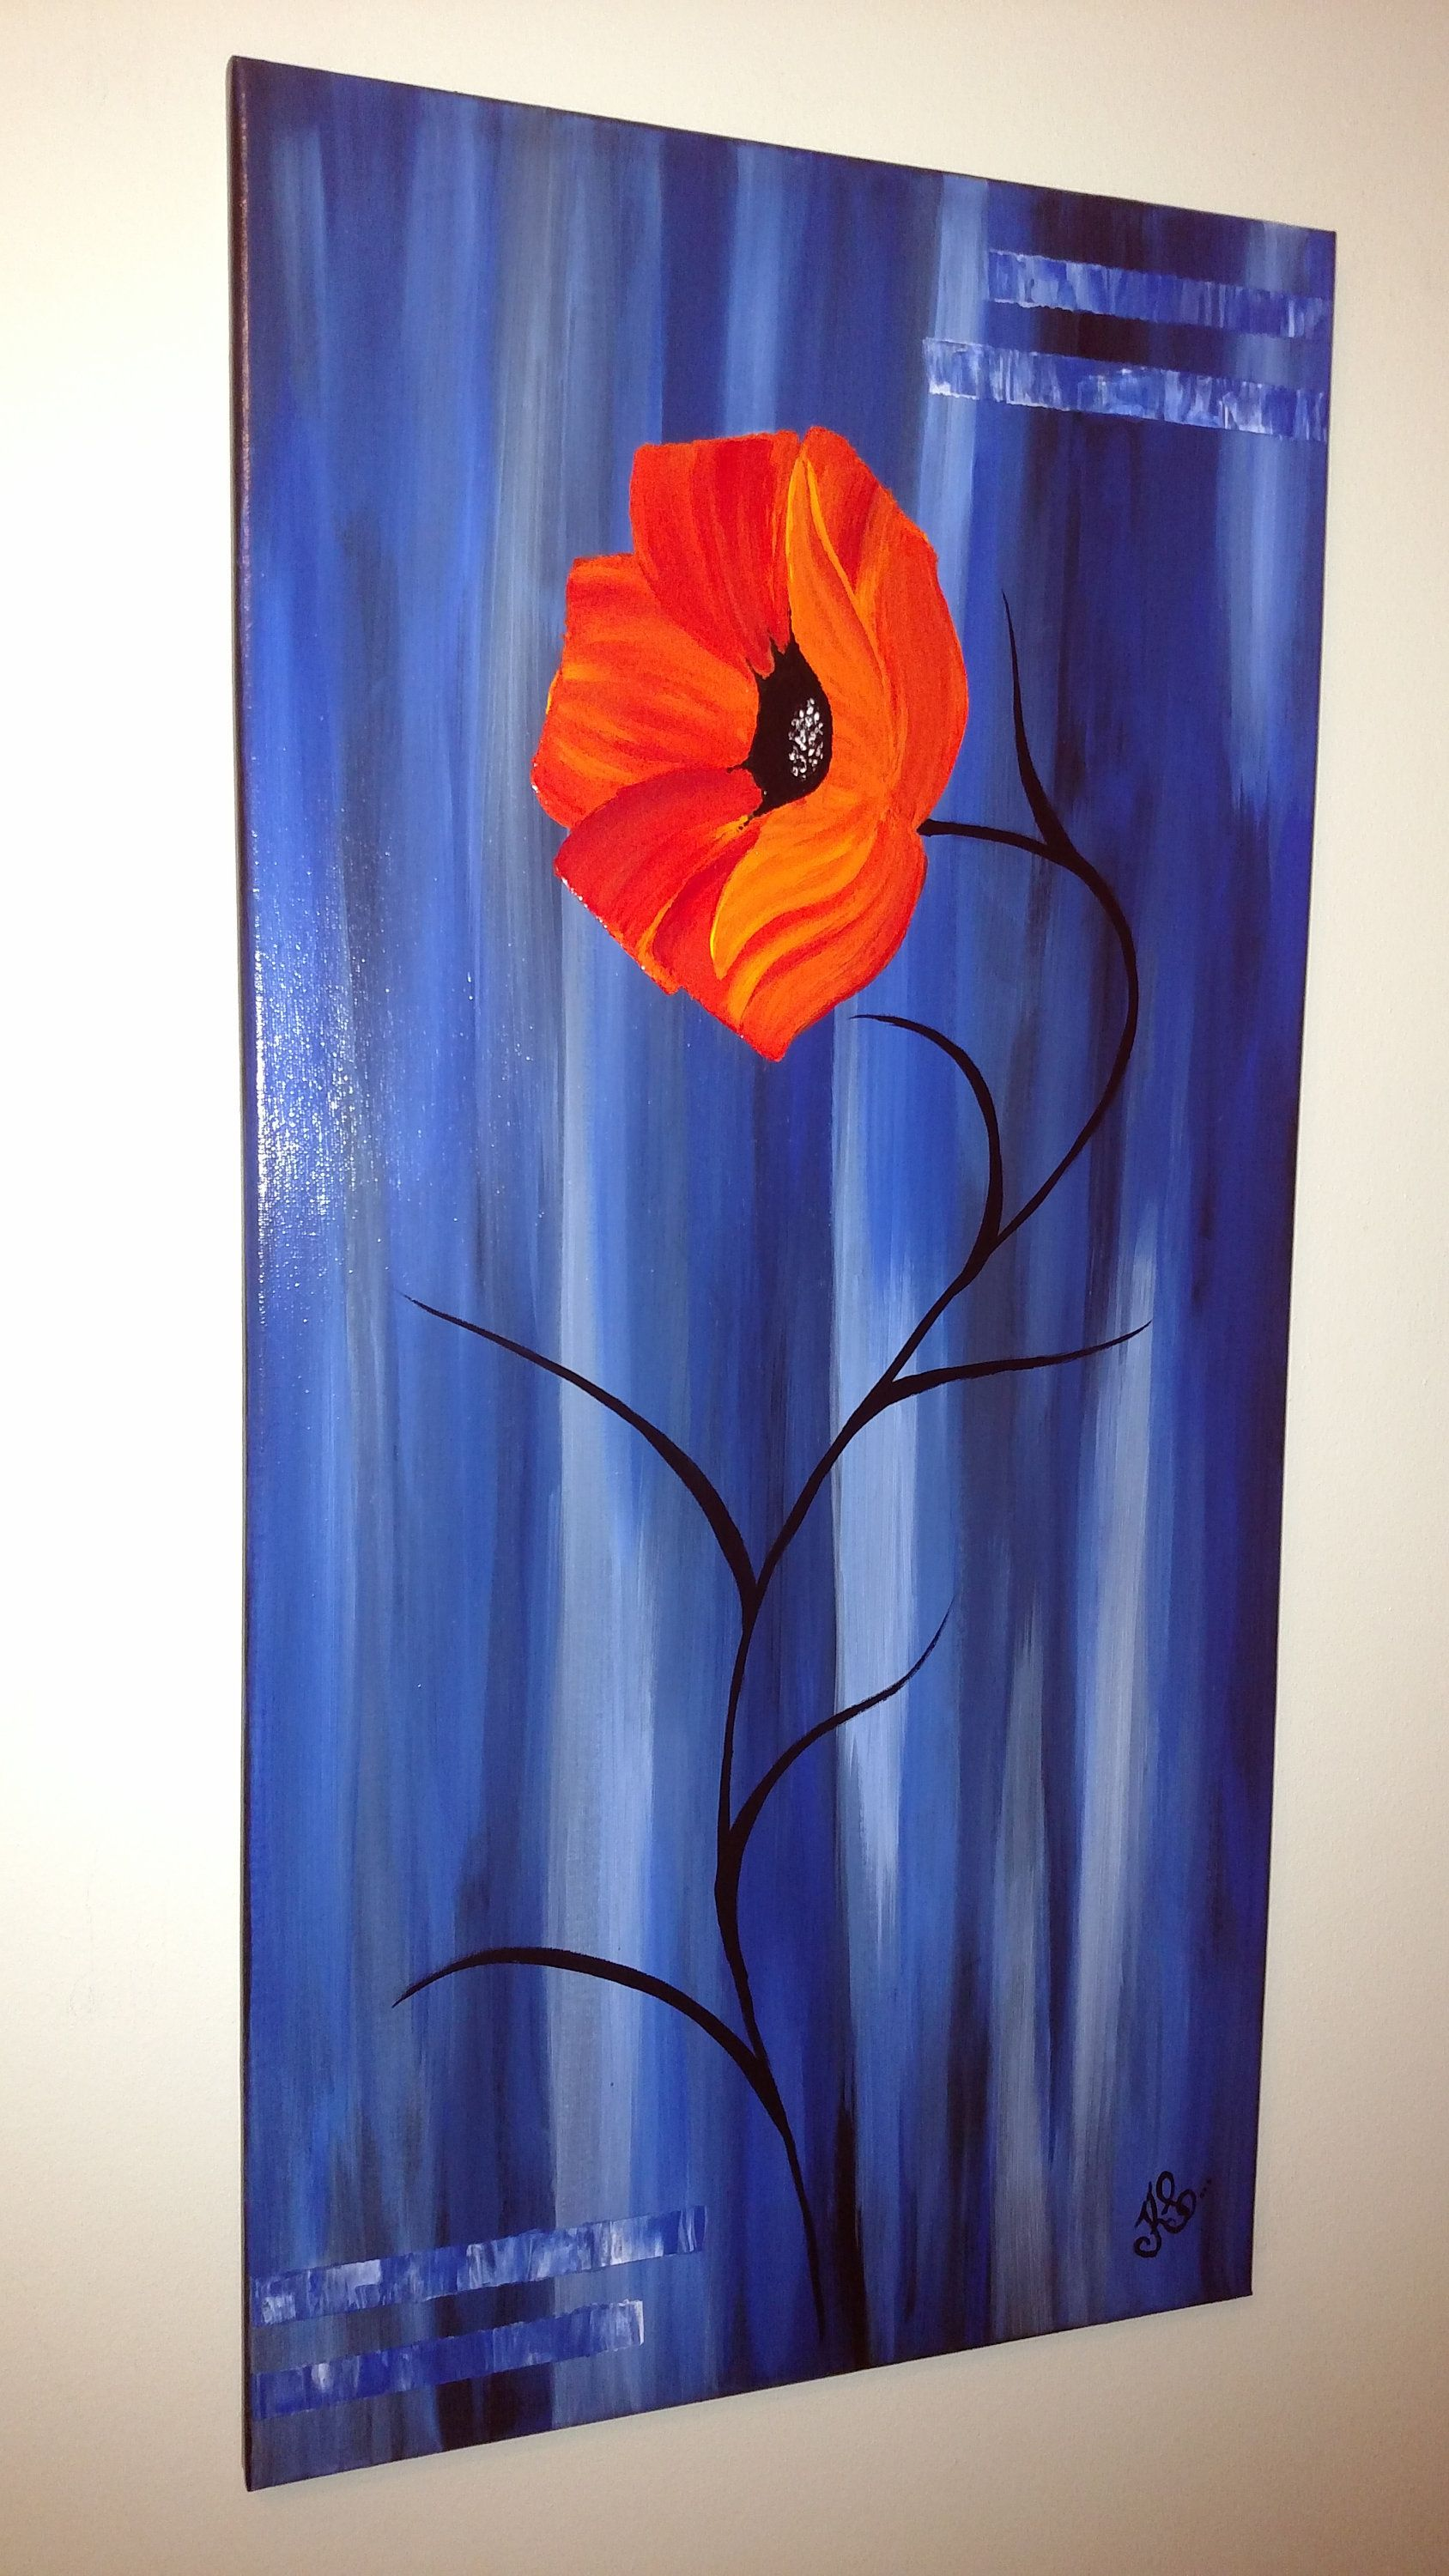 Large wall art red poppy flower original painting abstract canvas, royal blue vertical living room decor, modern fine art home office decor #paintinglivingrooms